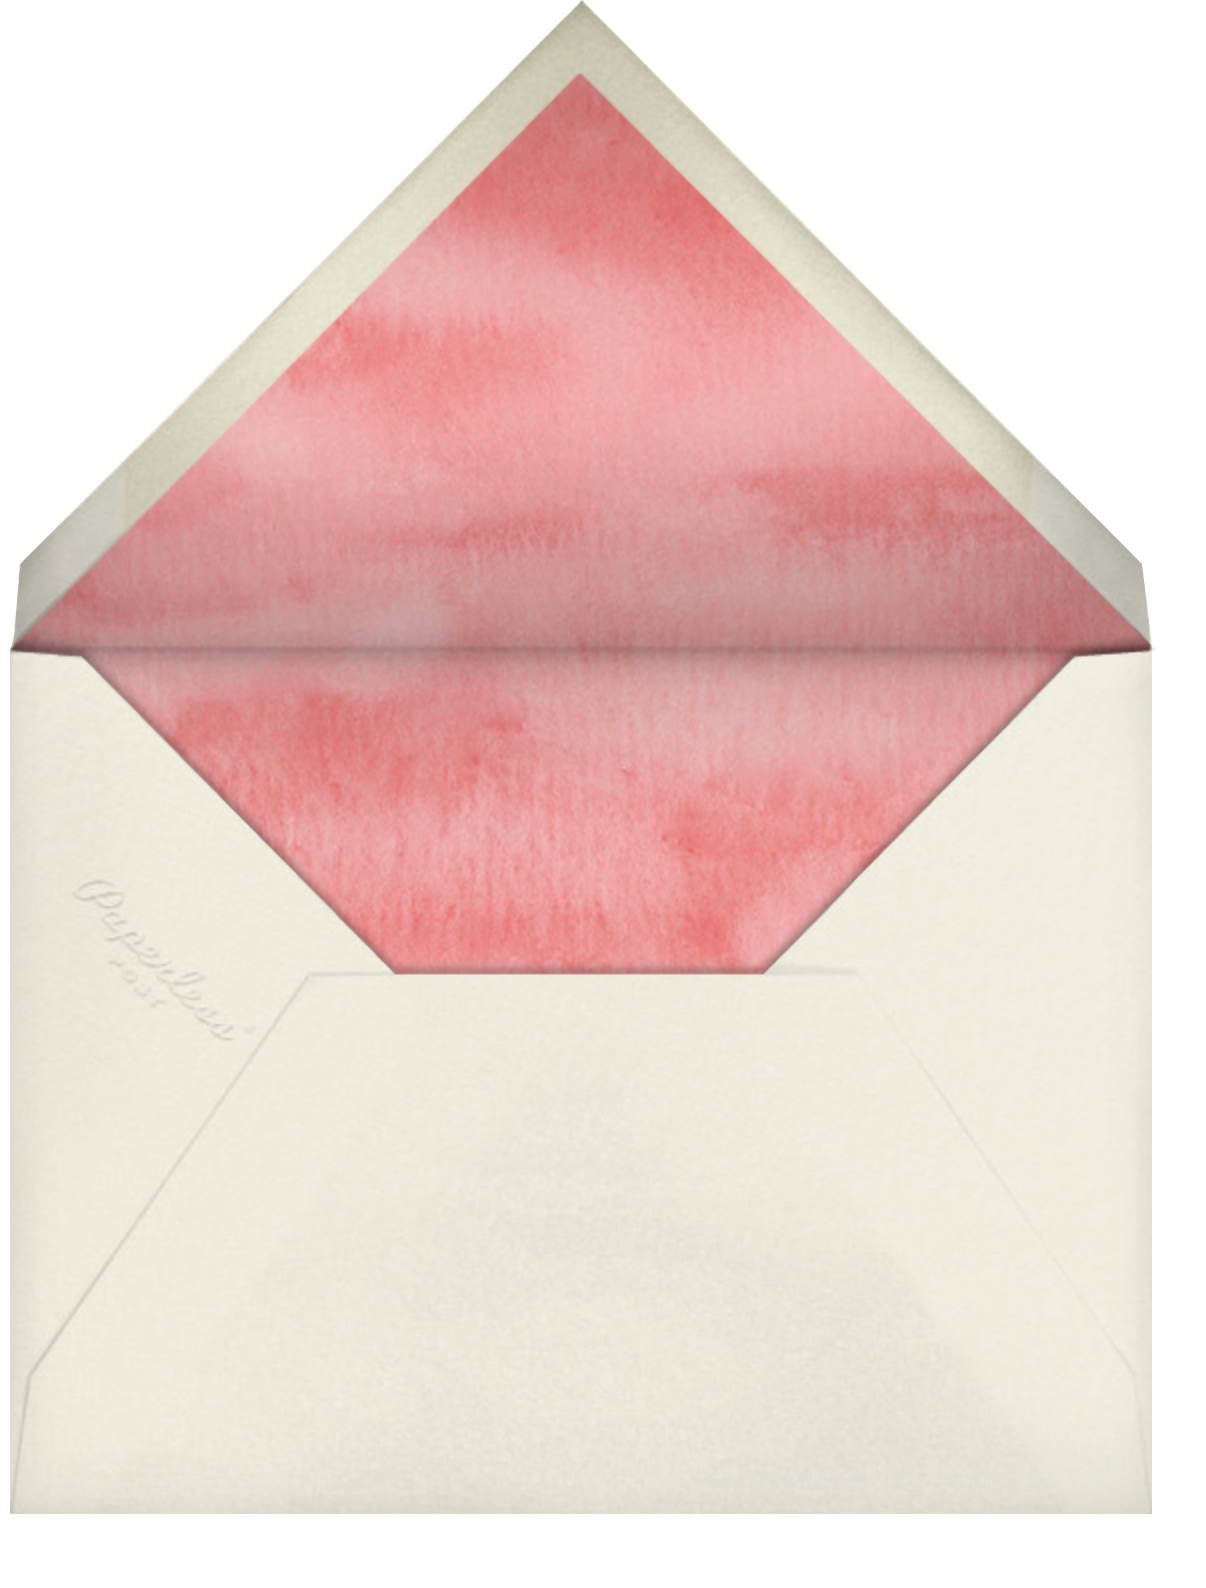 Japanese Cherry (Save the Date) - Felix Doolittle - Destination - envelope back